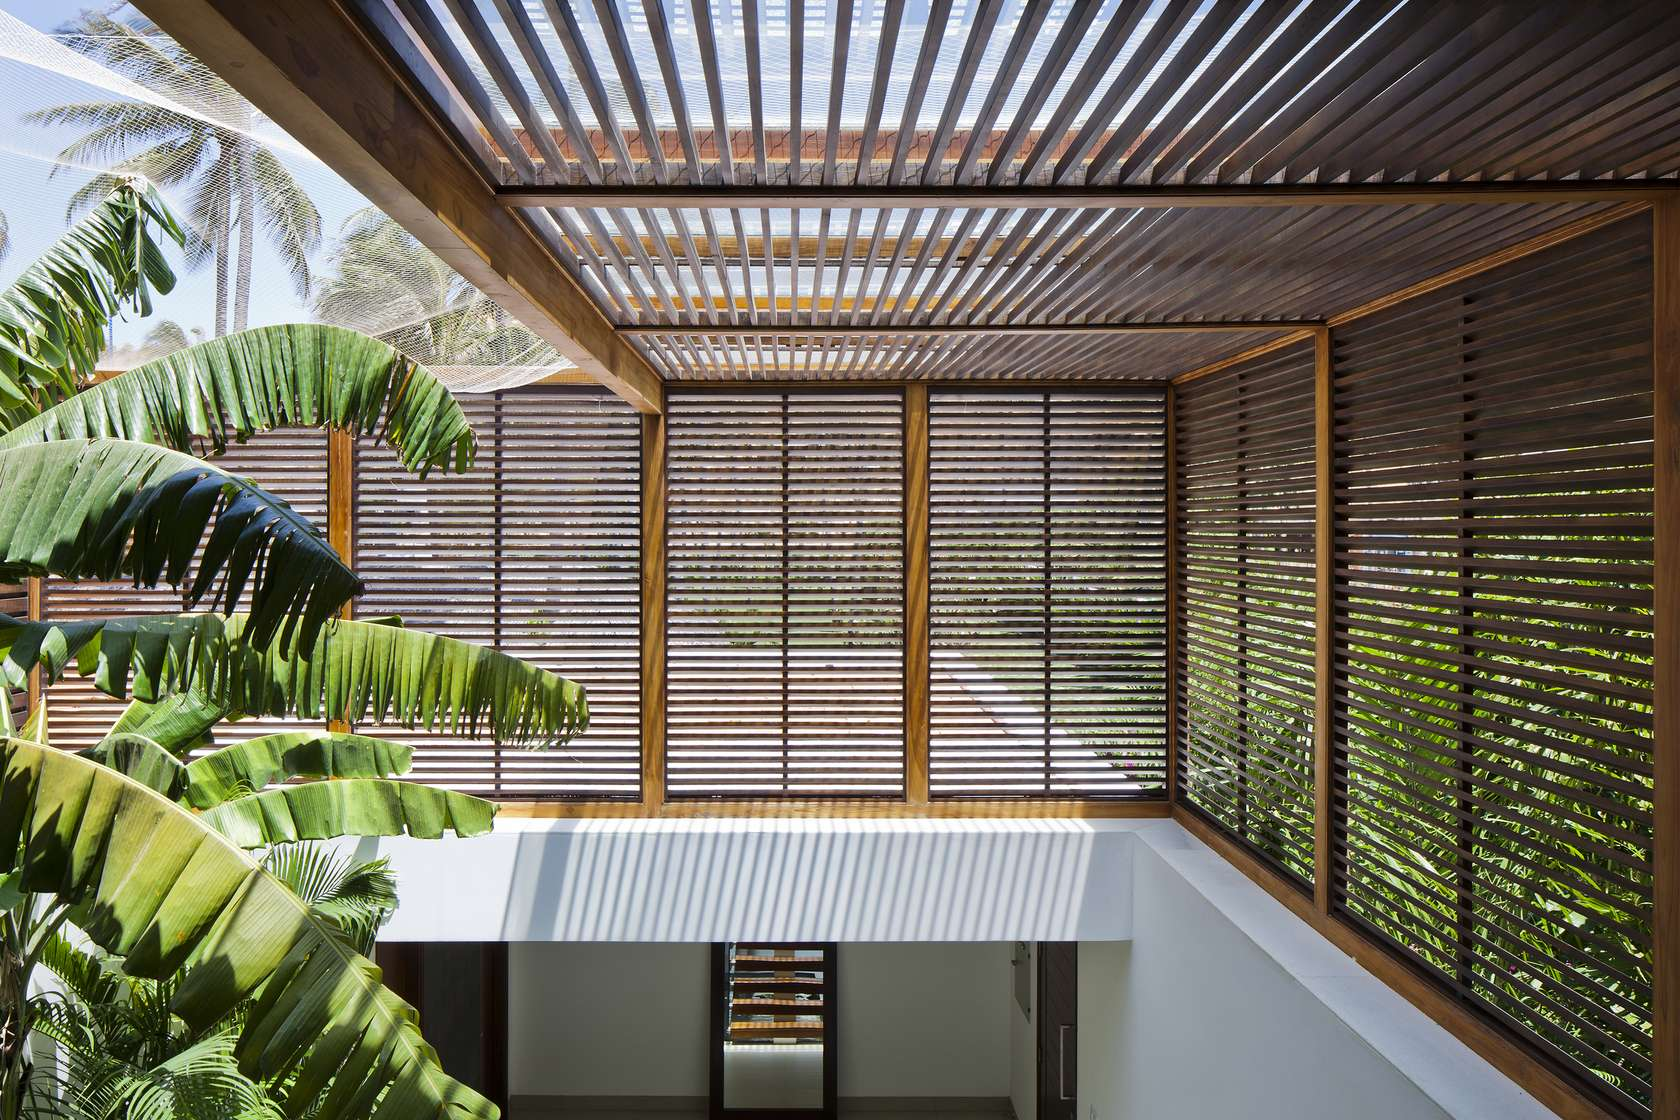 wood shutter design interior design ideas - Shutter Designs Ideas